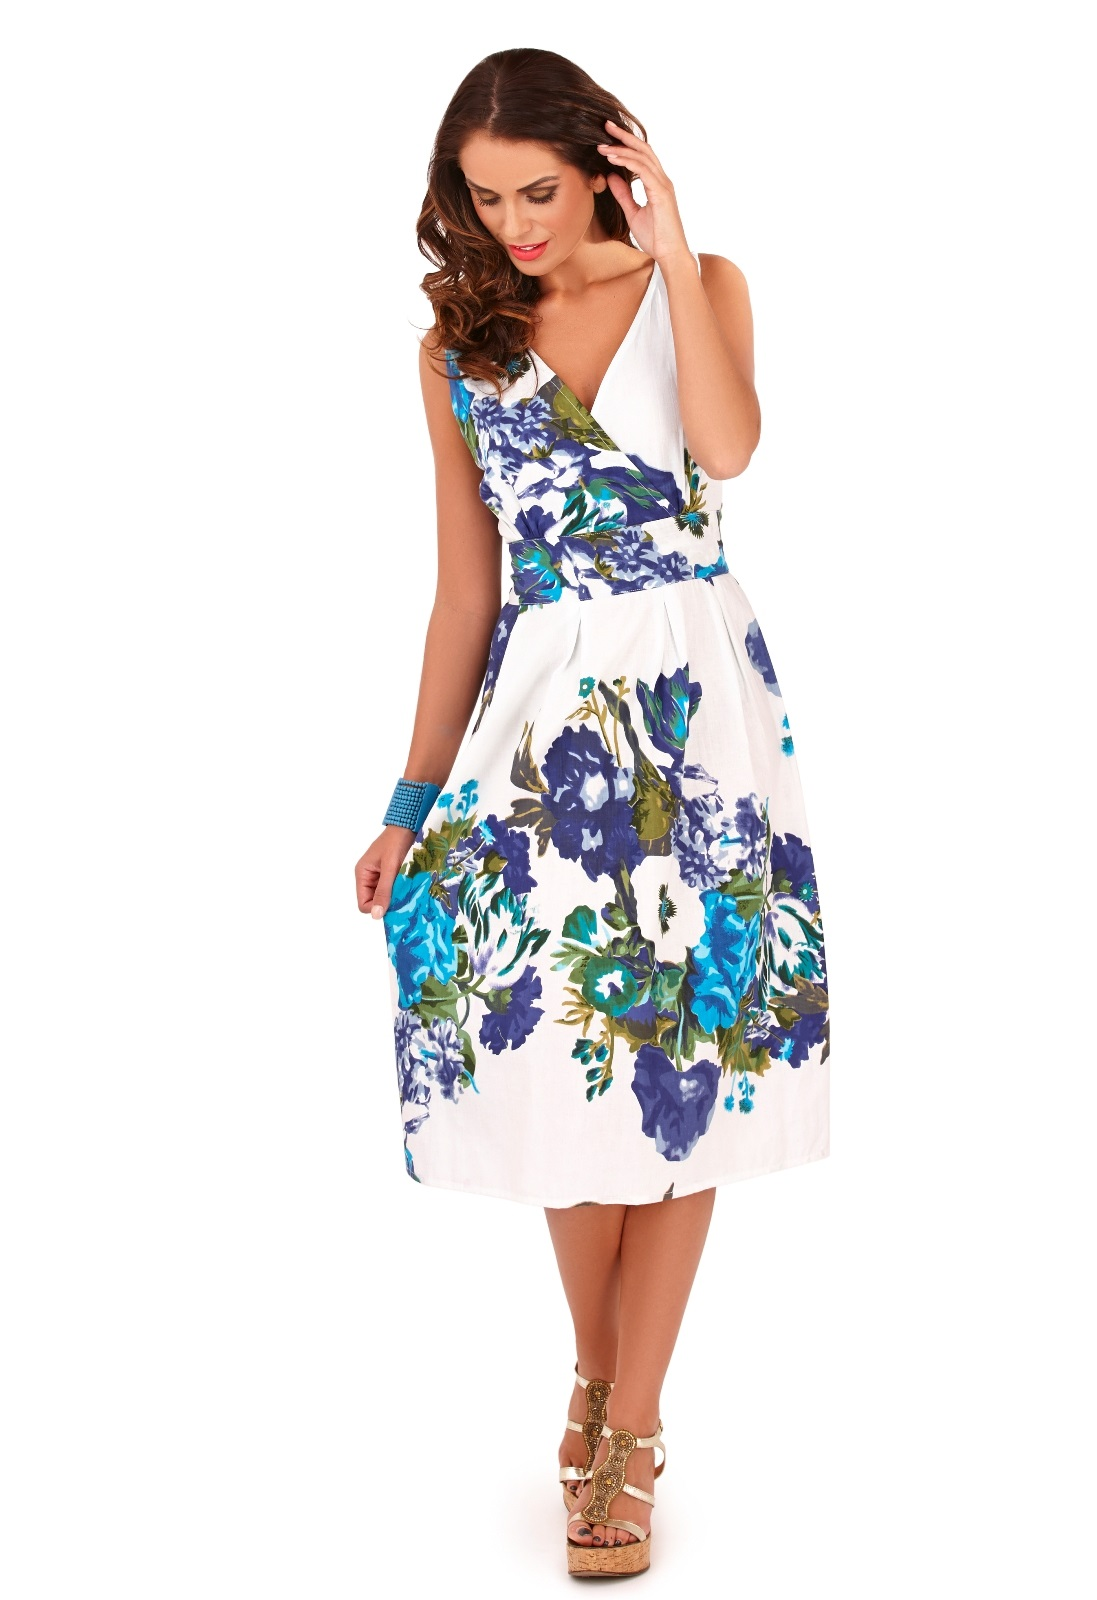 Womens cotton dress - results from brands Shop4Ever, Edwards, Vista, products like